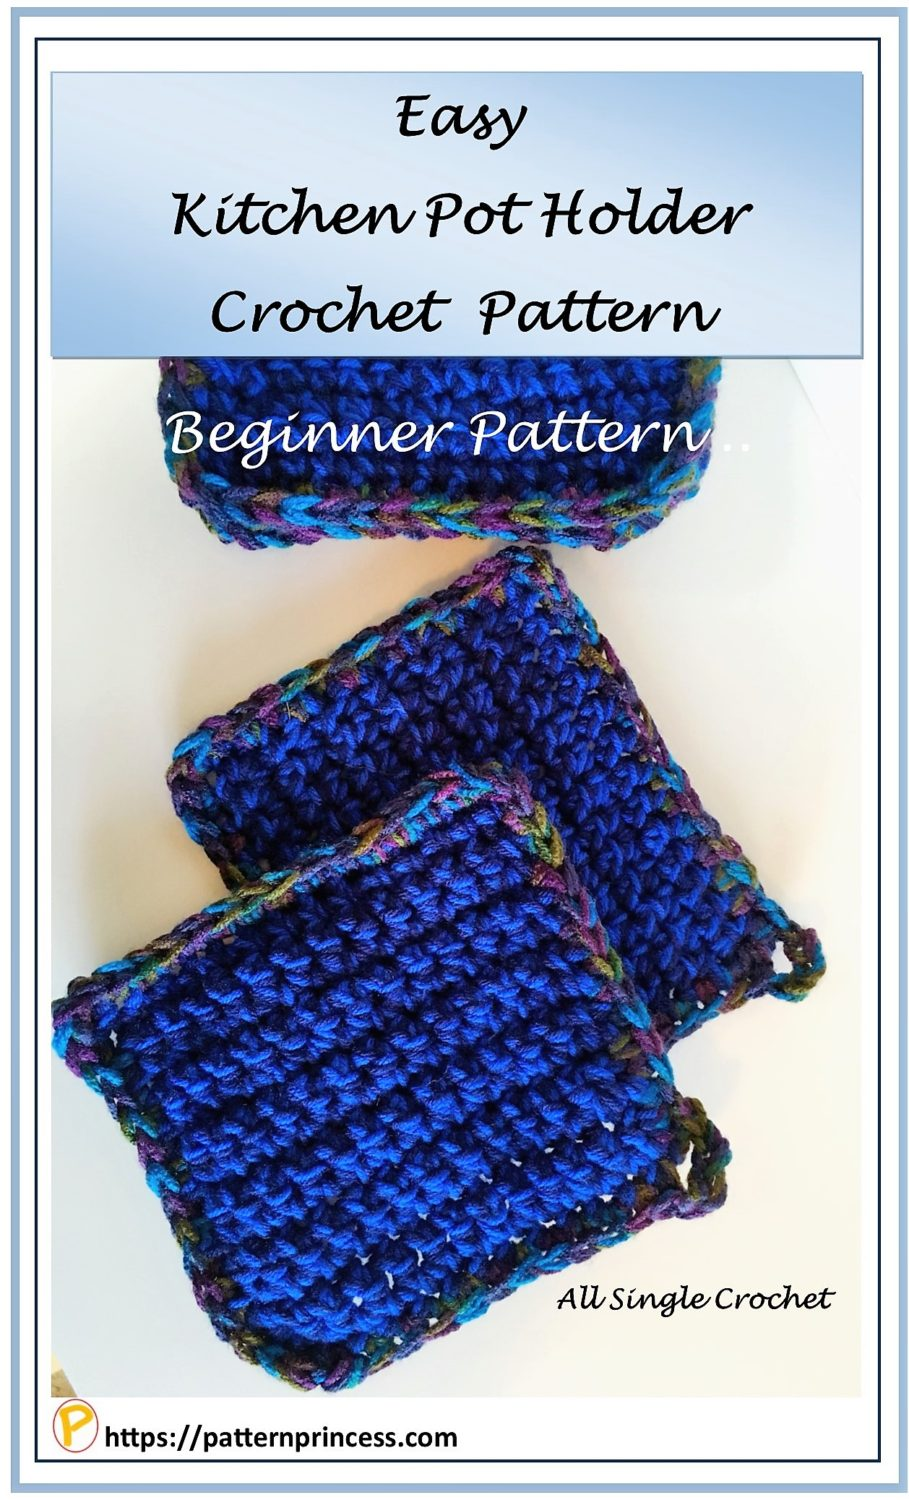 Easy Kitchen Pot Holder Crochet Pattern Pattern Princess